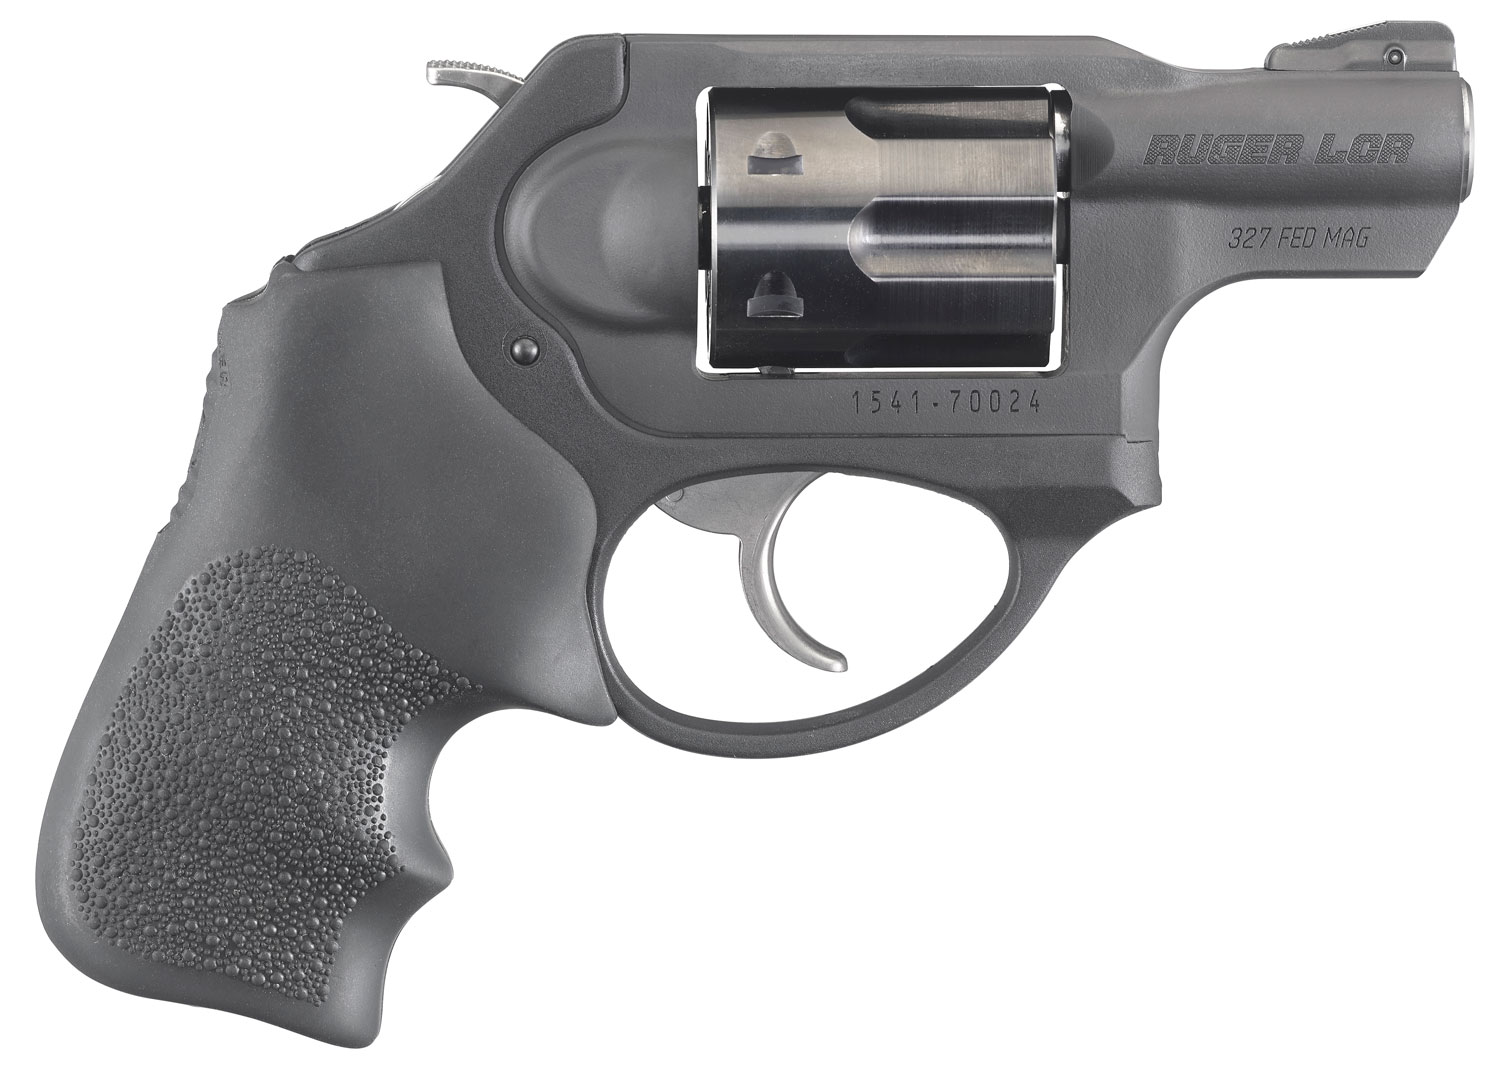 Ruger 5462 LCR LCRx Single/Double 327 Federal Magnum 1.87